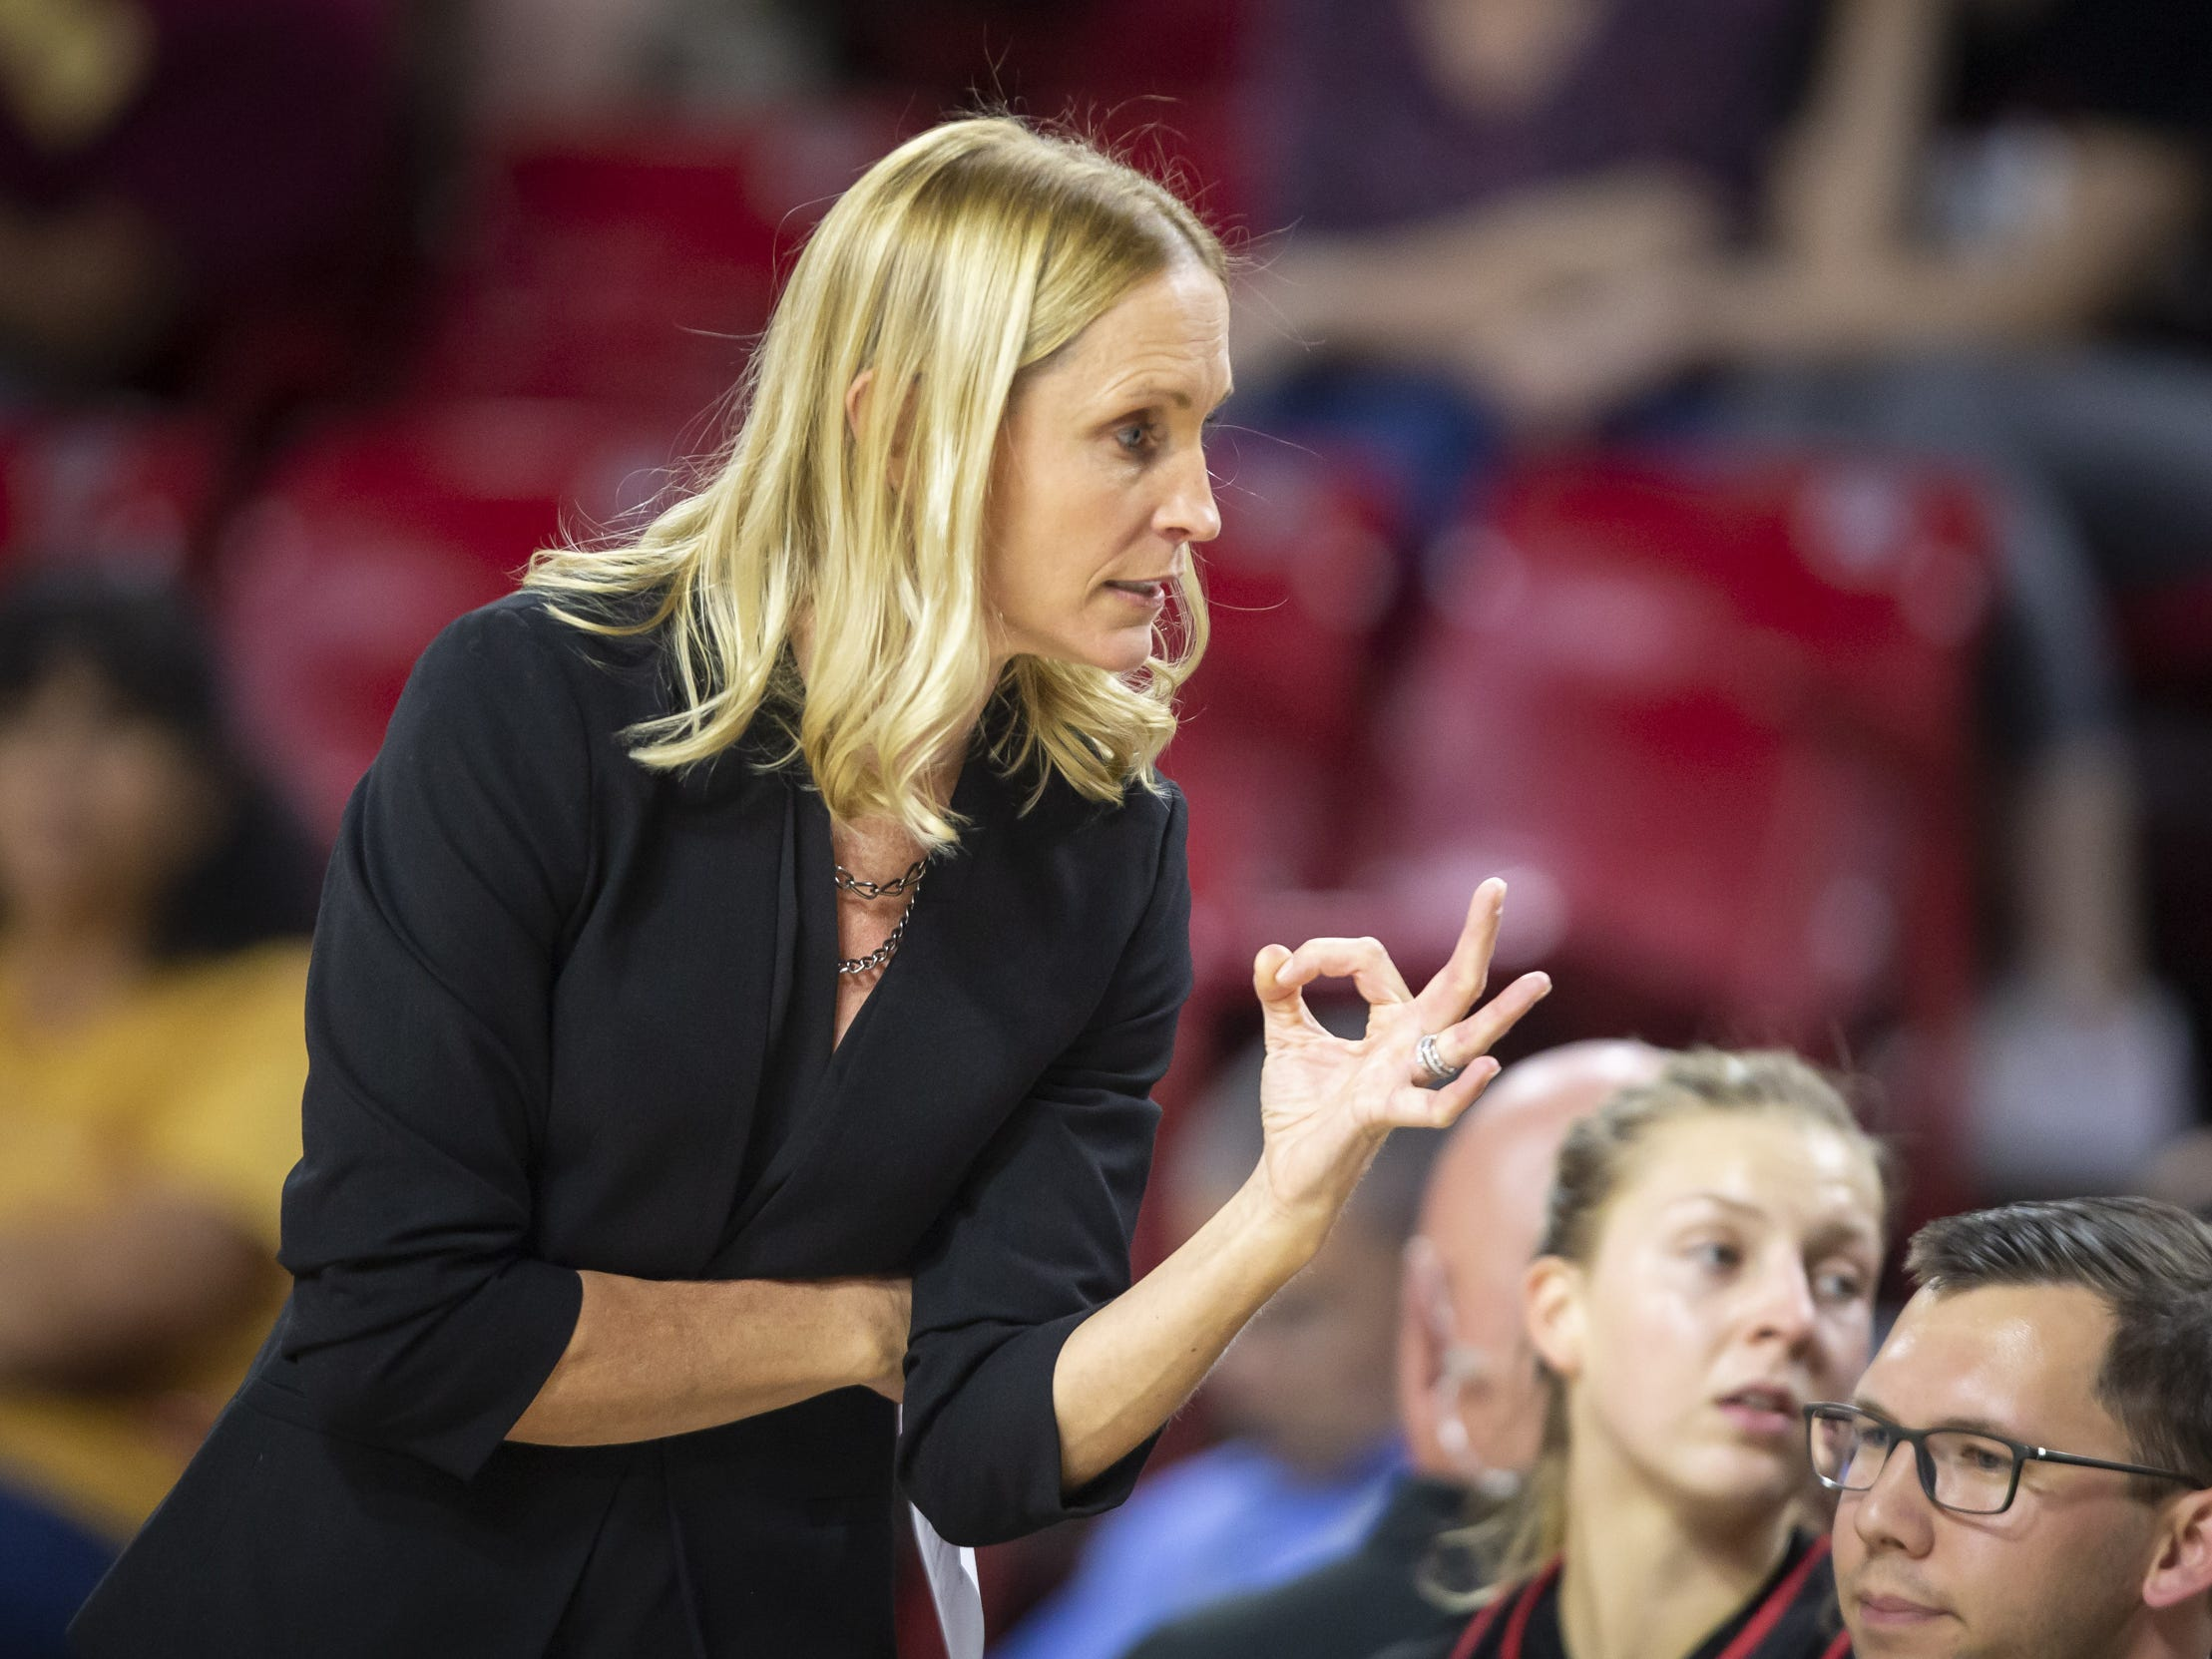 Head coach Christy Smith of the Incarnate Word Cardinals motions during the game against the Arizona State Sun Devils at Wells Fargo Arena on Tuesday, November 6, 2018 in Tempe, Arizona.